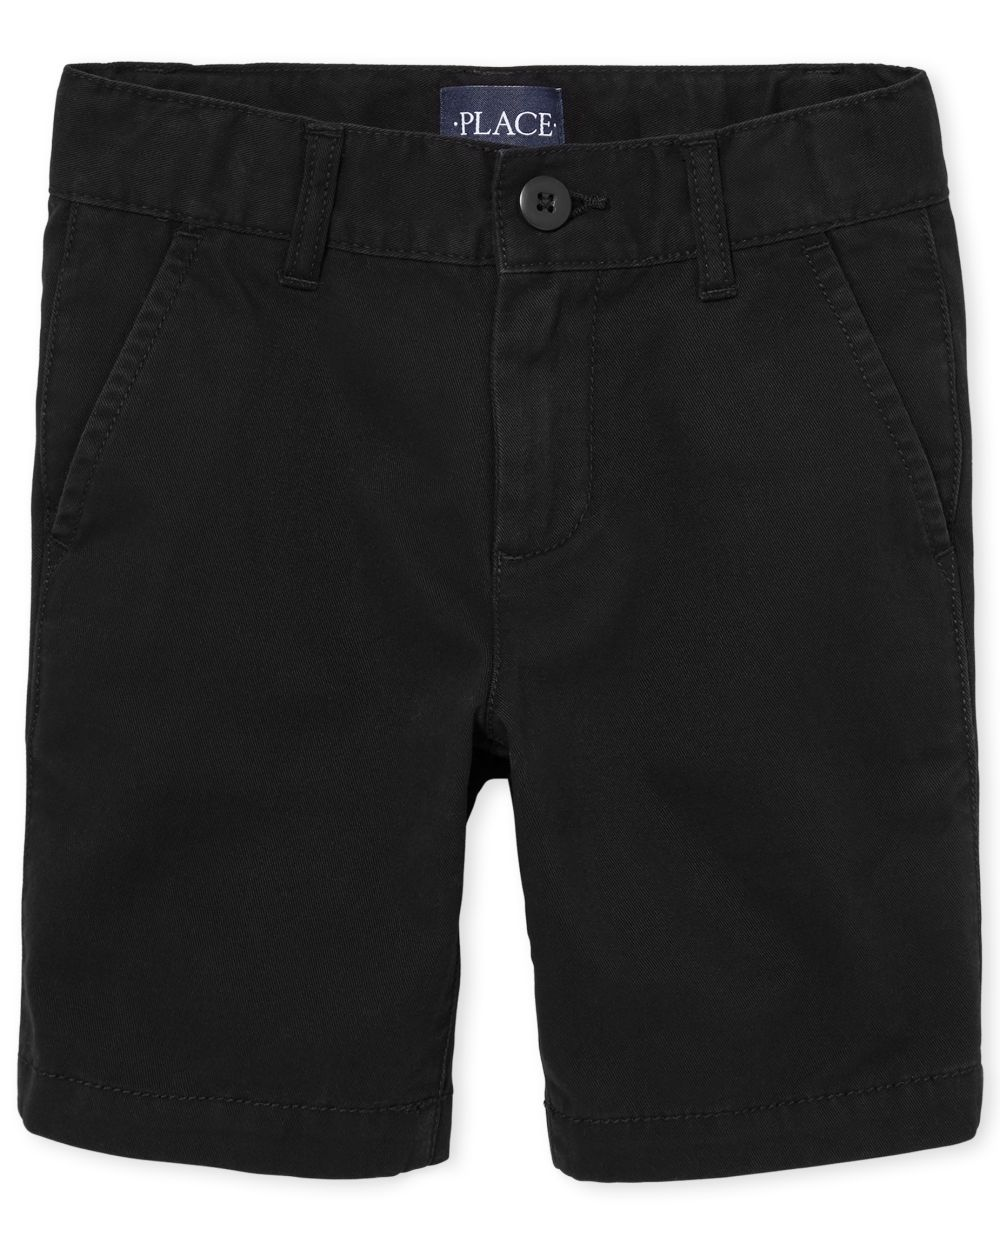 Boys Uniform Chino Shorts